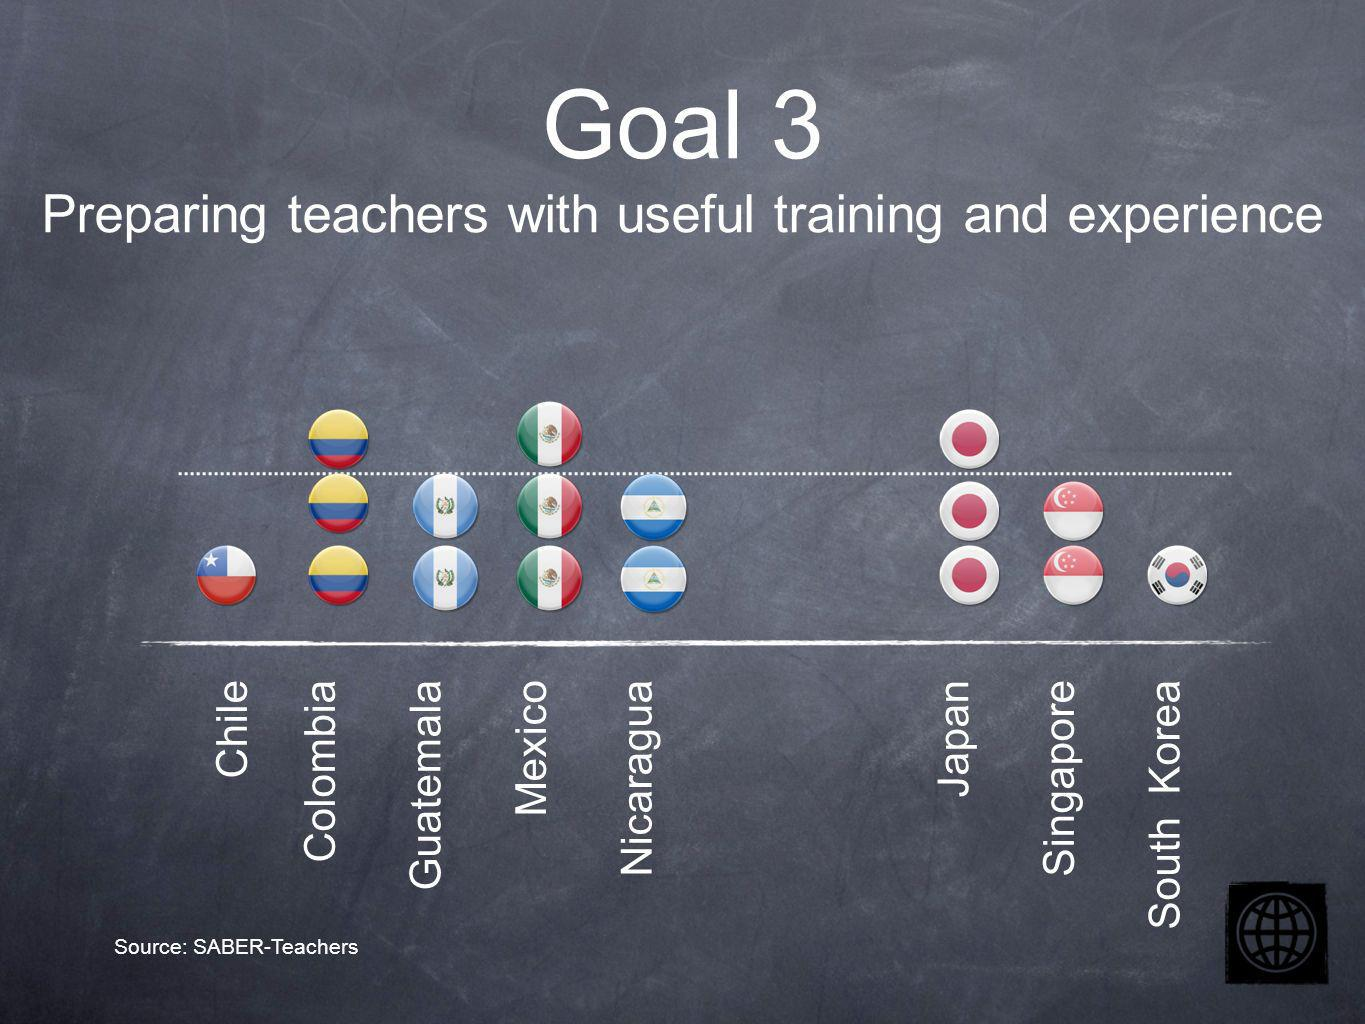 Chile Colombia Guatemala Mexico Nicaragua Japan Singapore South Korea Goal 3 Preparing teachers with useful training and experience Source: SABER-Teachers